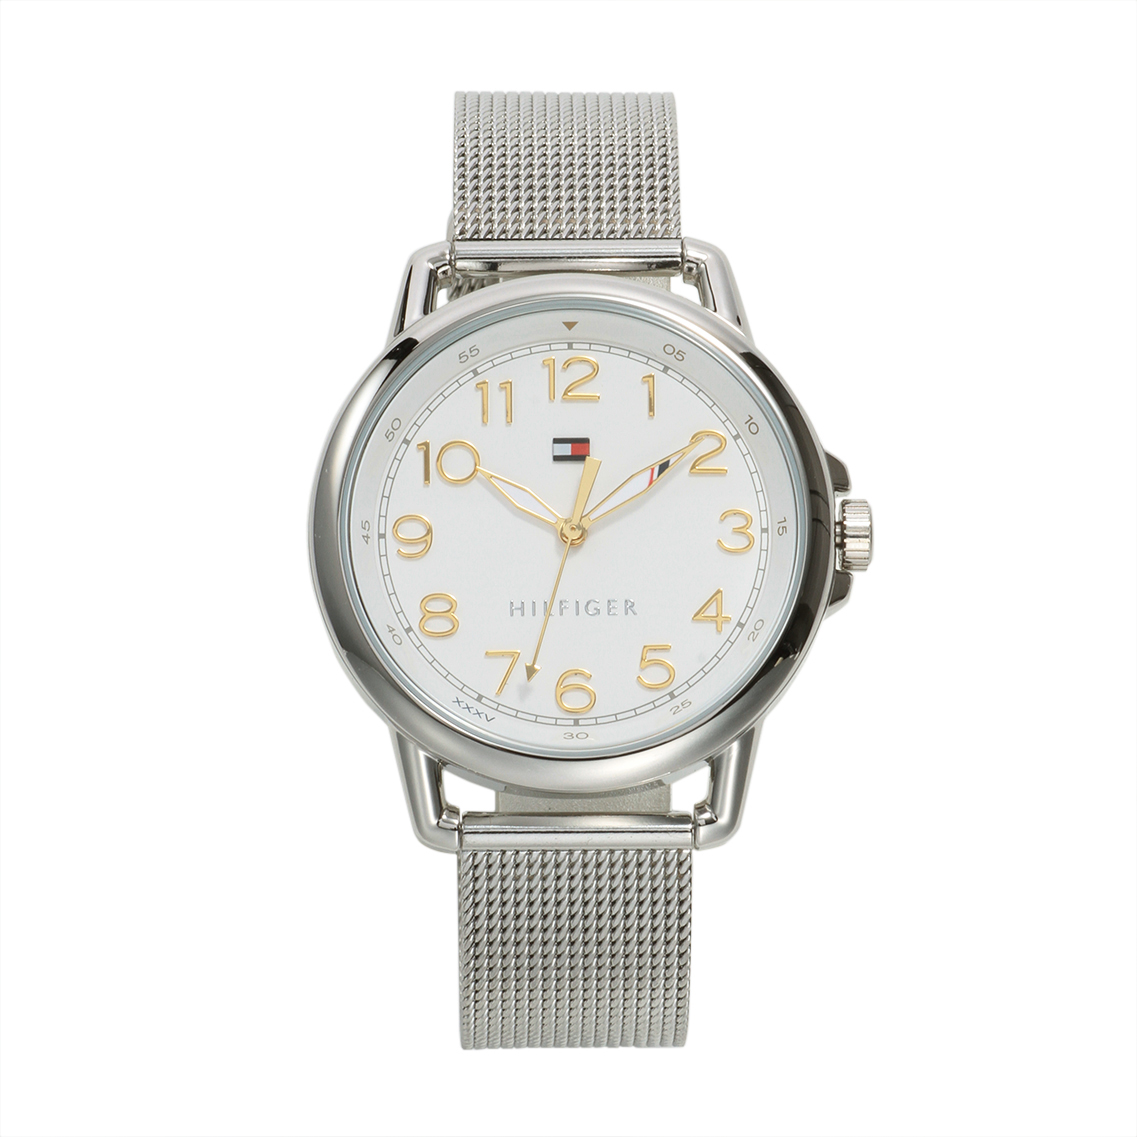 CLASSIC SIGNATURE WATCH